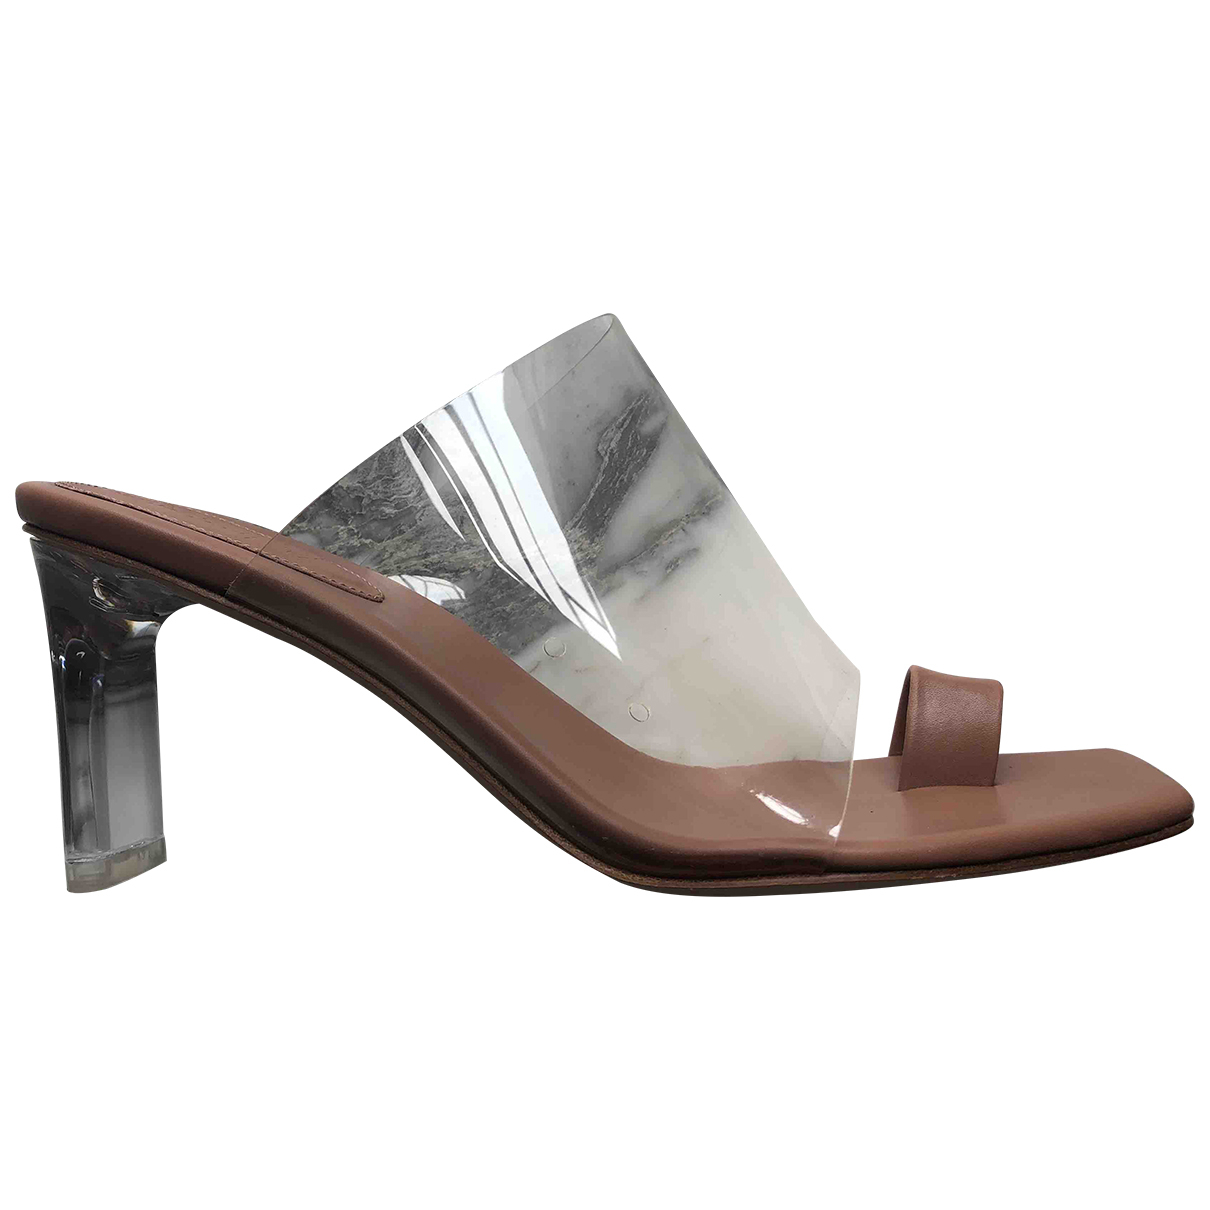 Rabeanco \N Beige Leather Sandals for Women 39 EU